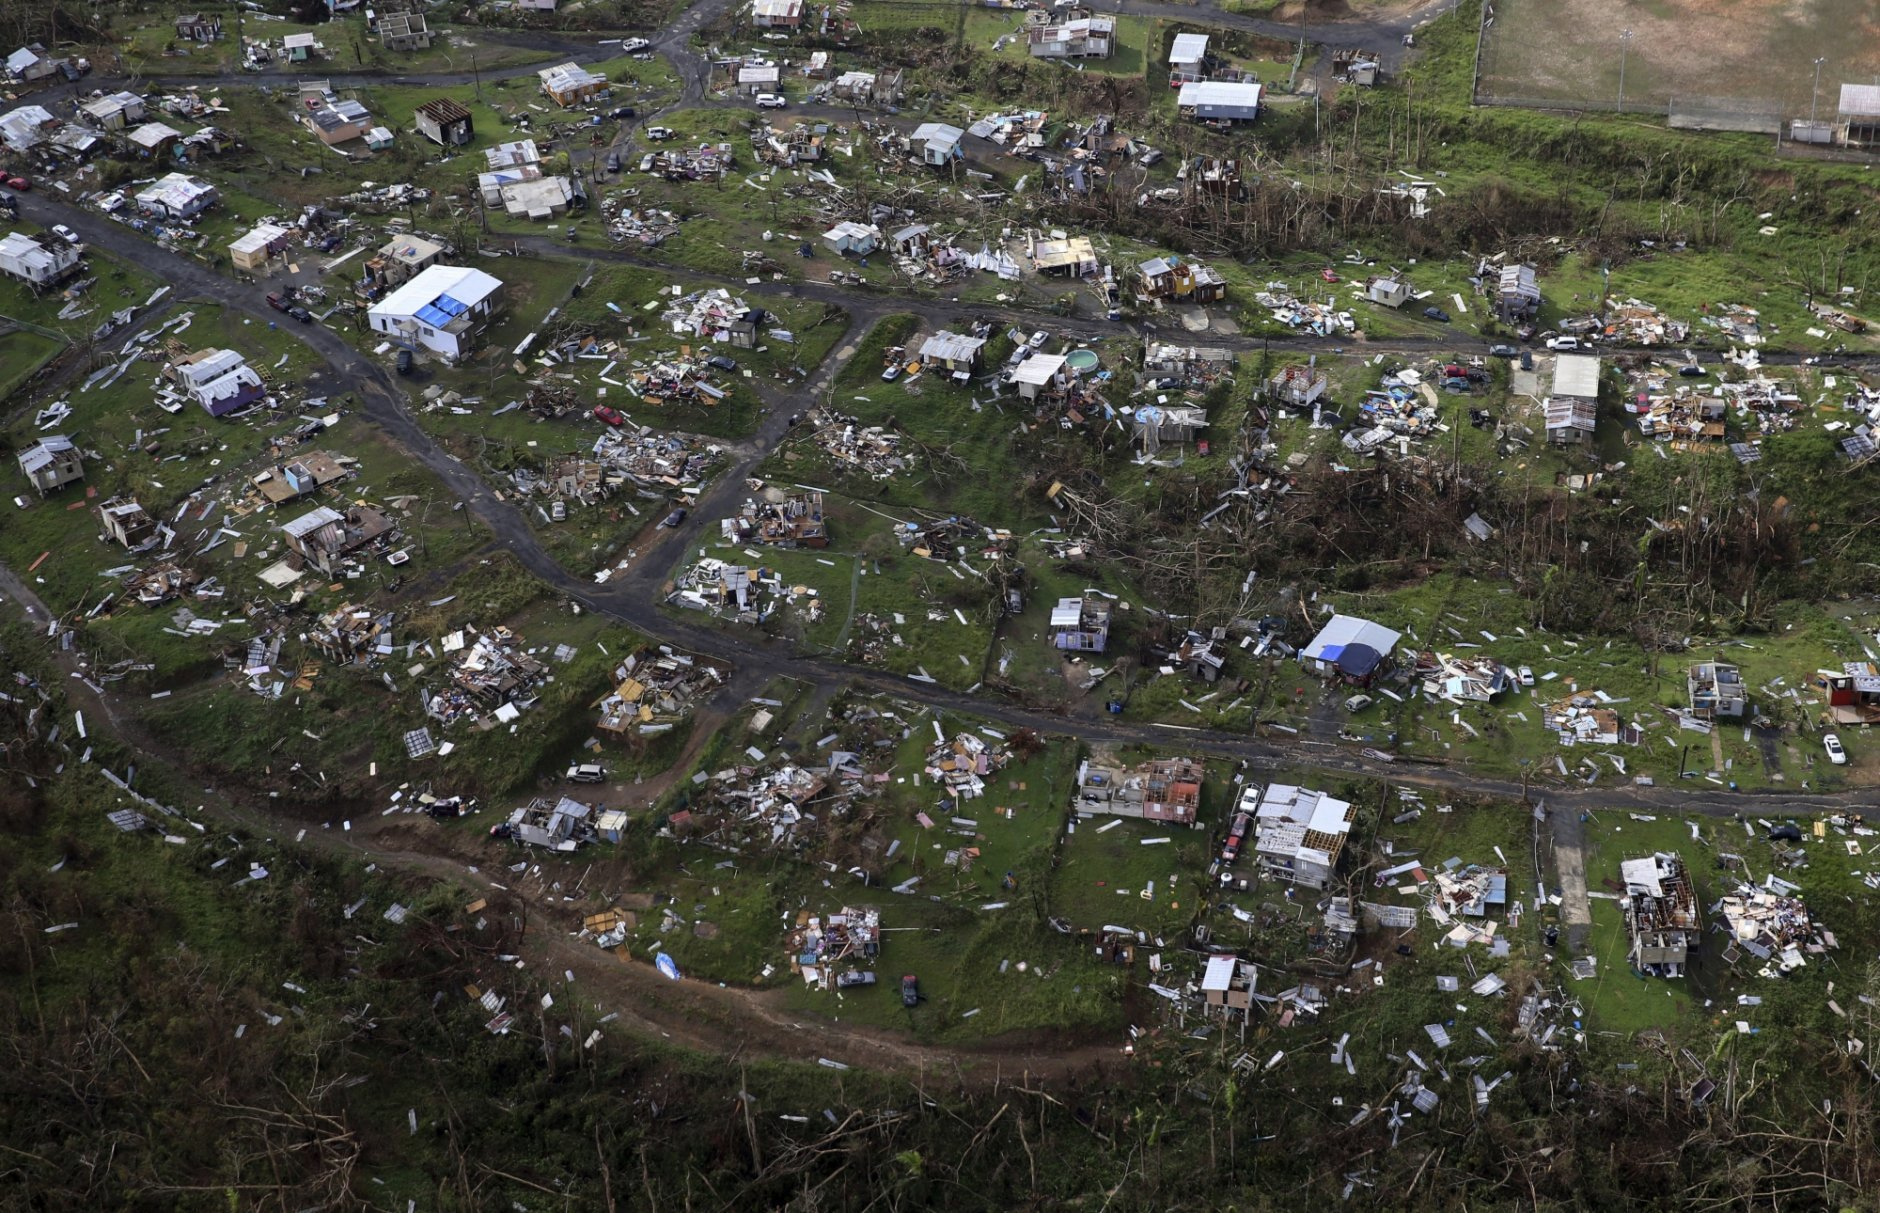 FILE - In this Sept. 28, 2017, file photo, homes and other buildings destroyed by Hurricane Maria lie in ruins in Toa Alta, Puerto Rico. Top Florida Republicans have been quick to say President Donald Trump is wrong about the death toll in Puerto Rico. (AP Photo/Gerald Herbert, File)